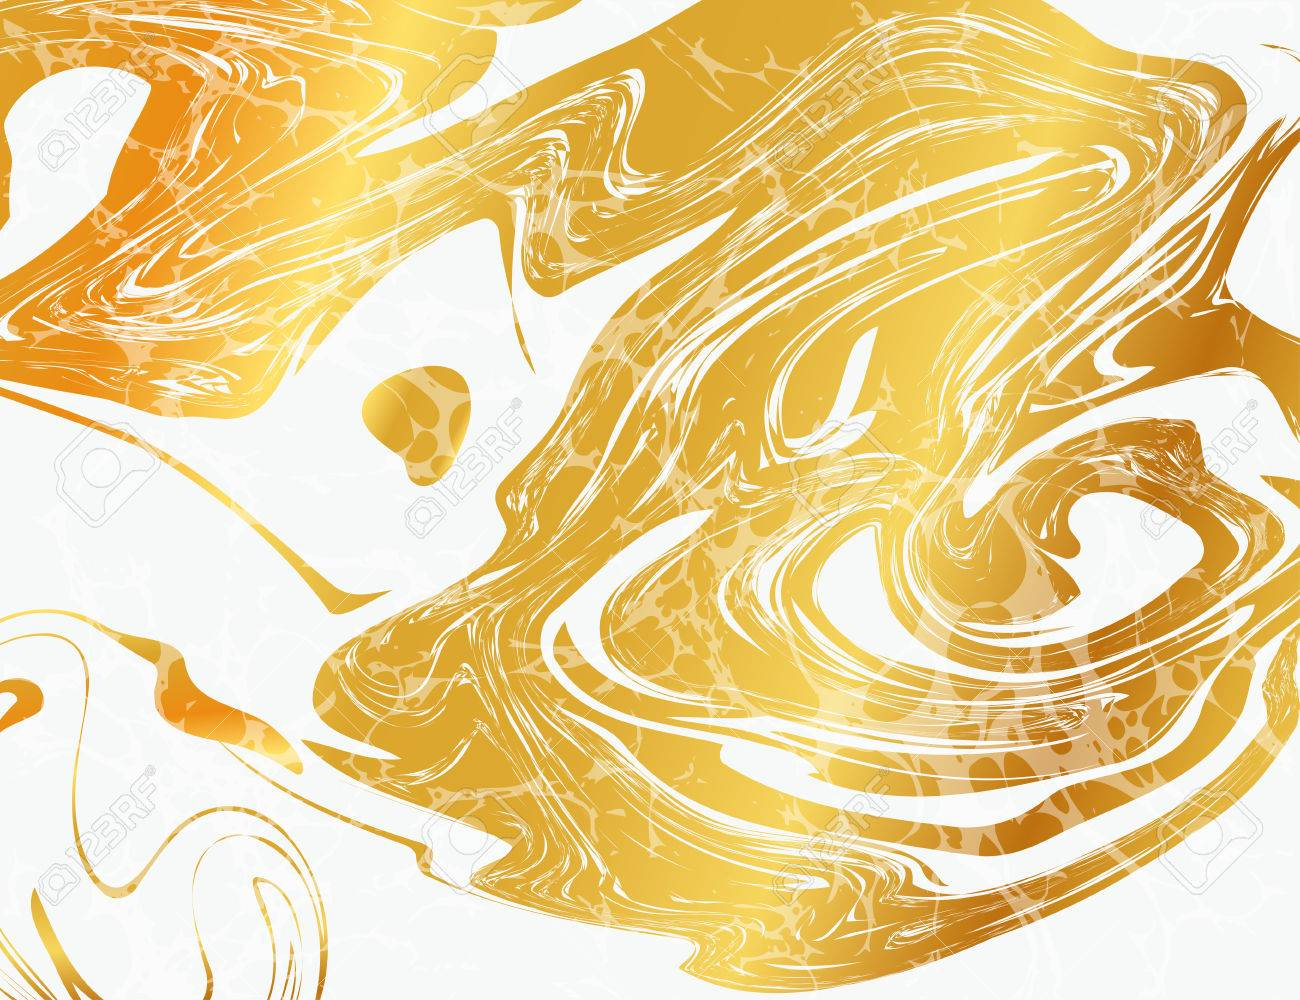 Vector Illustration of Marbling Texture for Design, Website, Background, Banner. Ink Liquid Element Template. Watercolor Pattern. Gold and Black - 53292230